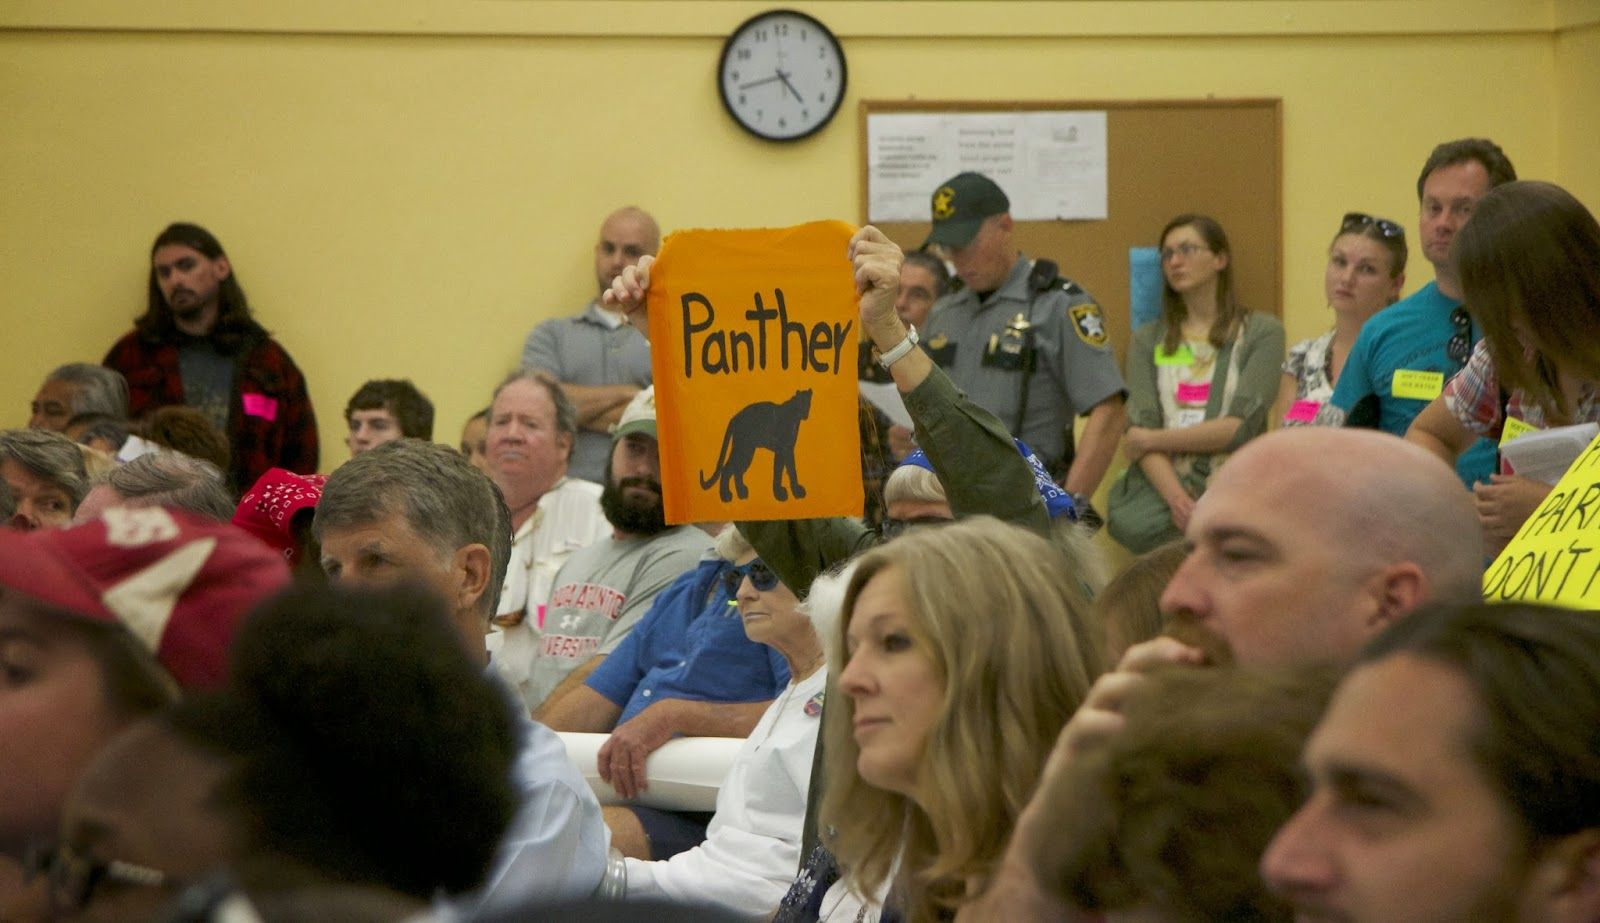 Sierra Club Florida News: Victory for Panther Habitat as Oil Driller Leaves Florida